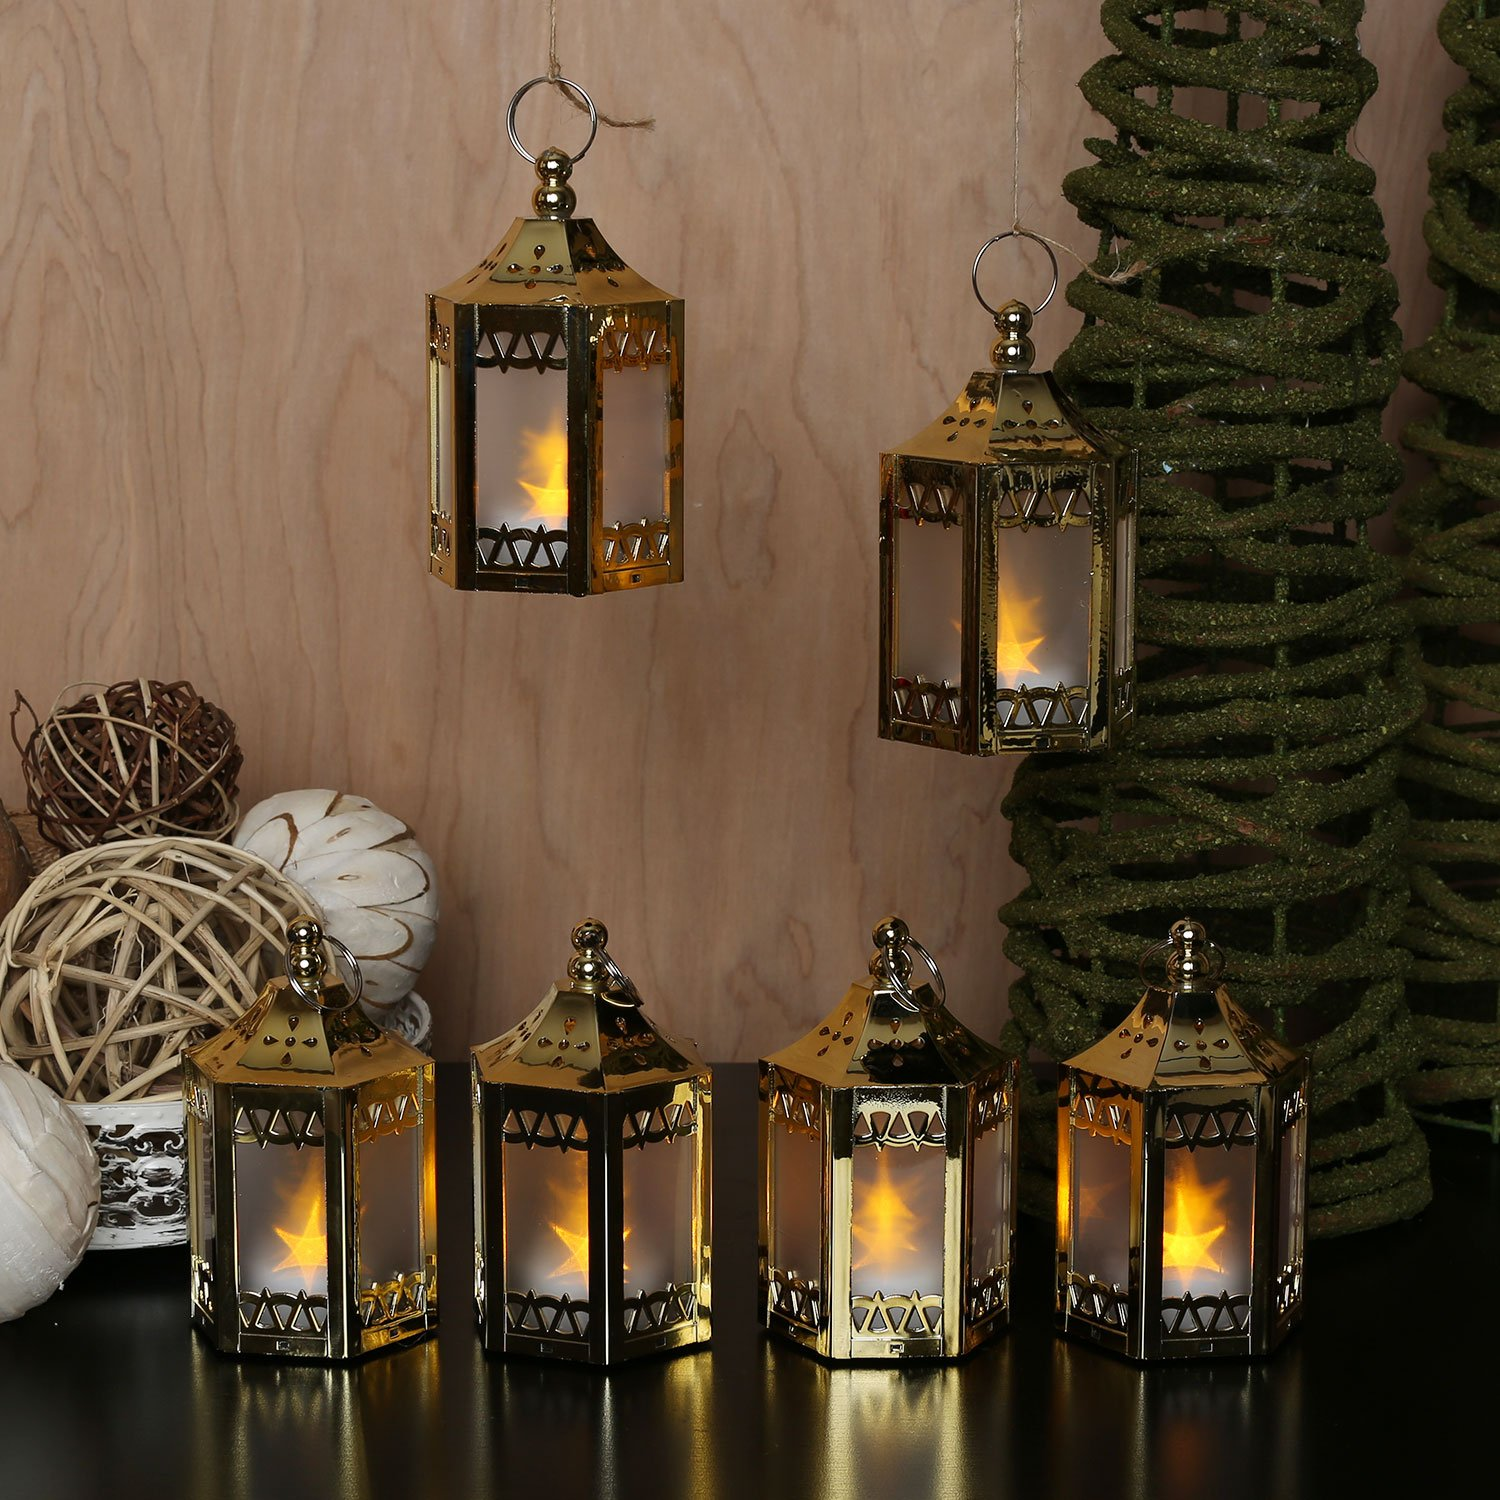 "6 Gold Mini Holographic Star Lanterns, 4.5"", Warm White LEDs, Batteries Included"